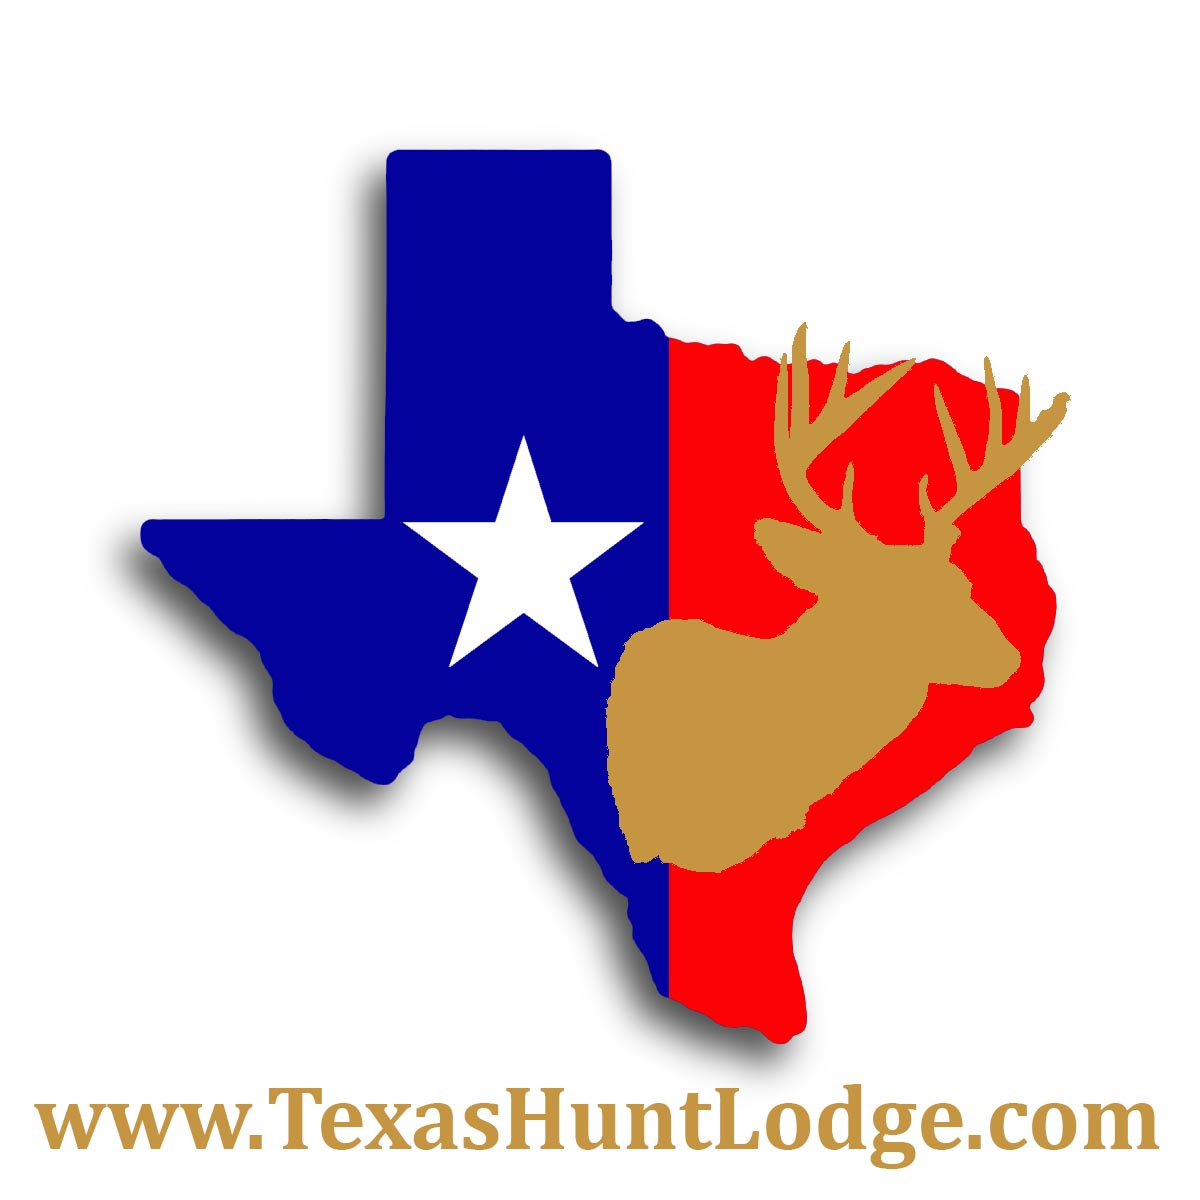 texashuntlodge_golddeer.jpg